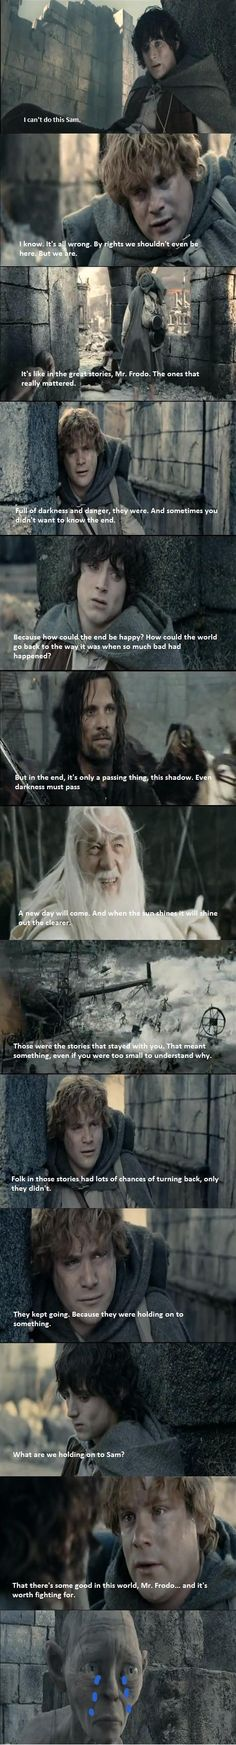 One of the most inspiring scenes of LOTR